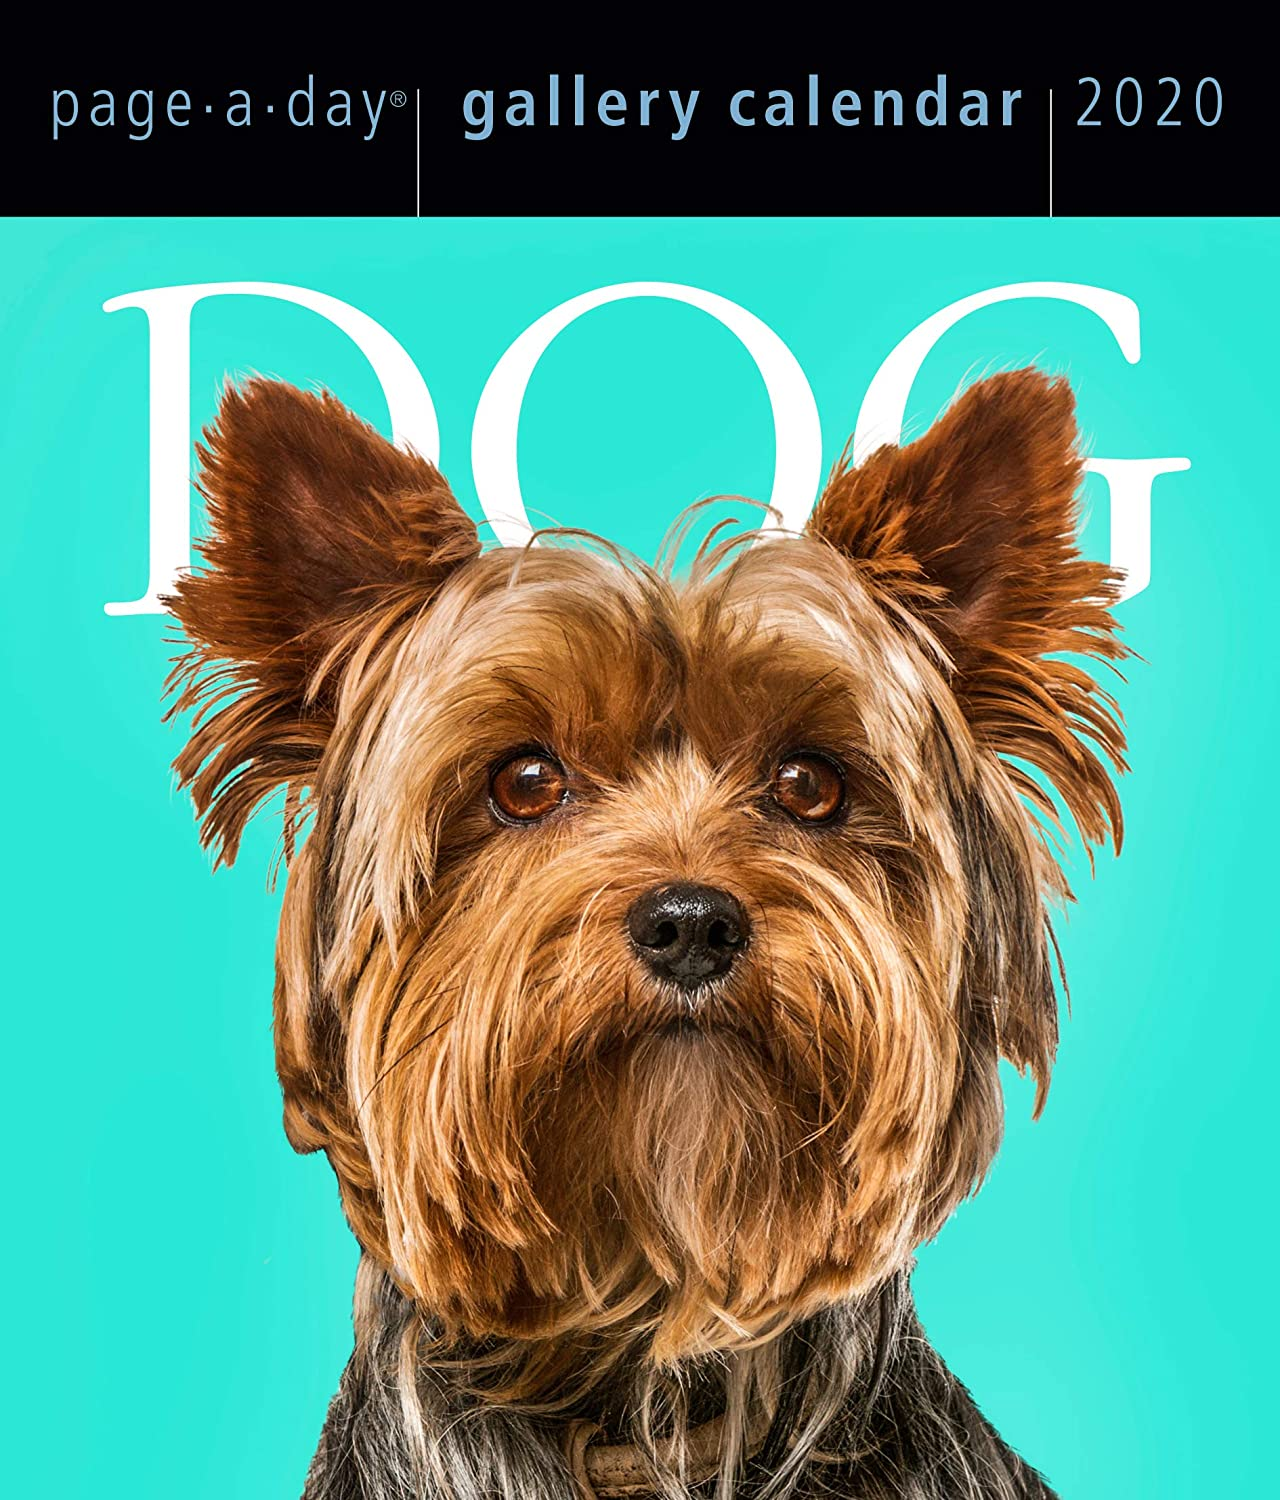 Dog Page-A-Day Gallery Calendar 2020 [6.25